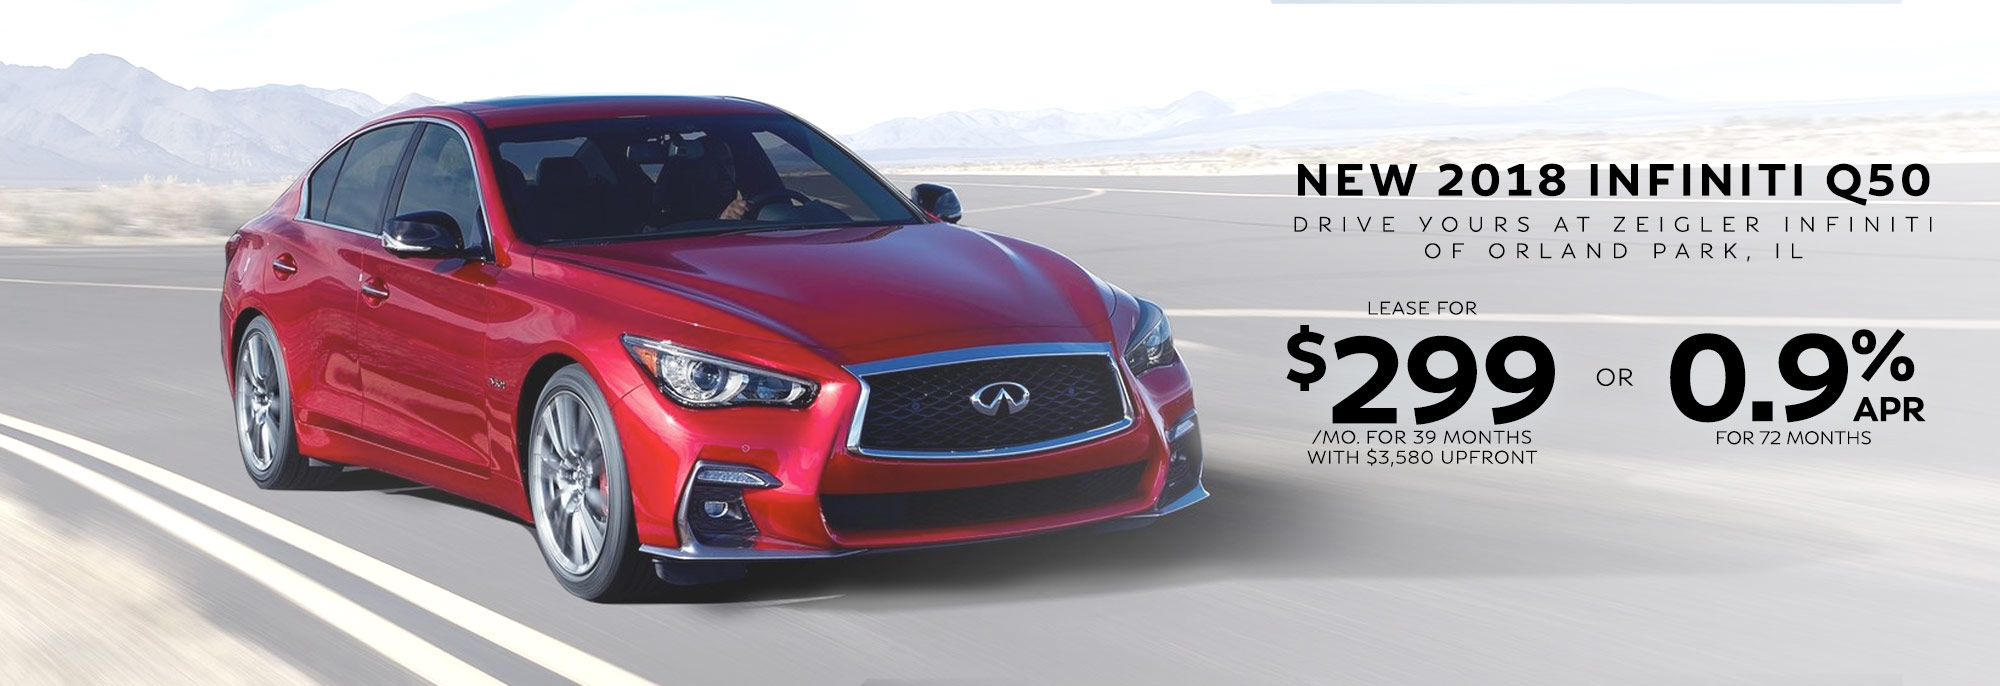 2018 Infiniti Q50 Lease And Finance Offers Orland Park Il Remote Starter New Offer